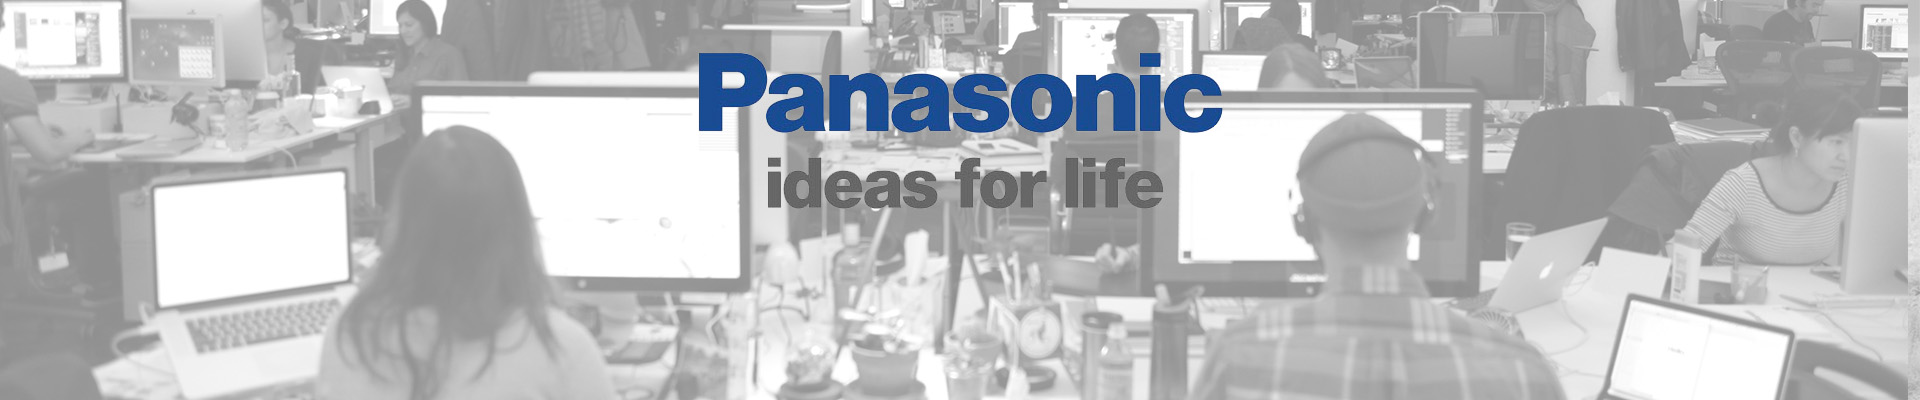 Panasonic Phone Systems in a busy Office